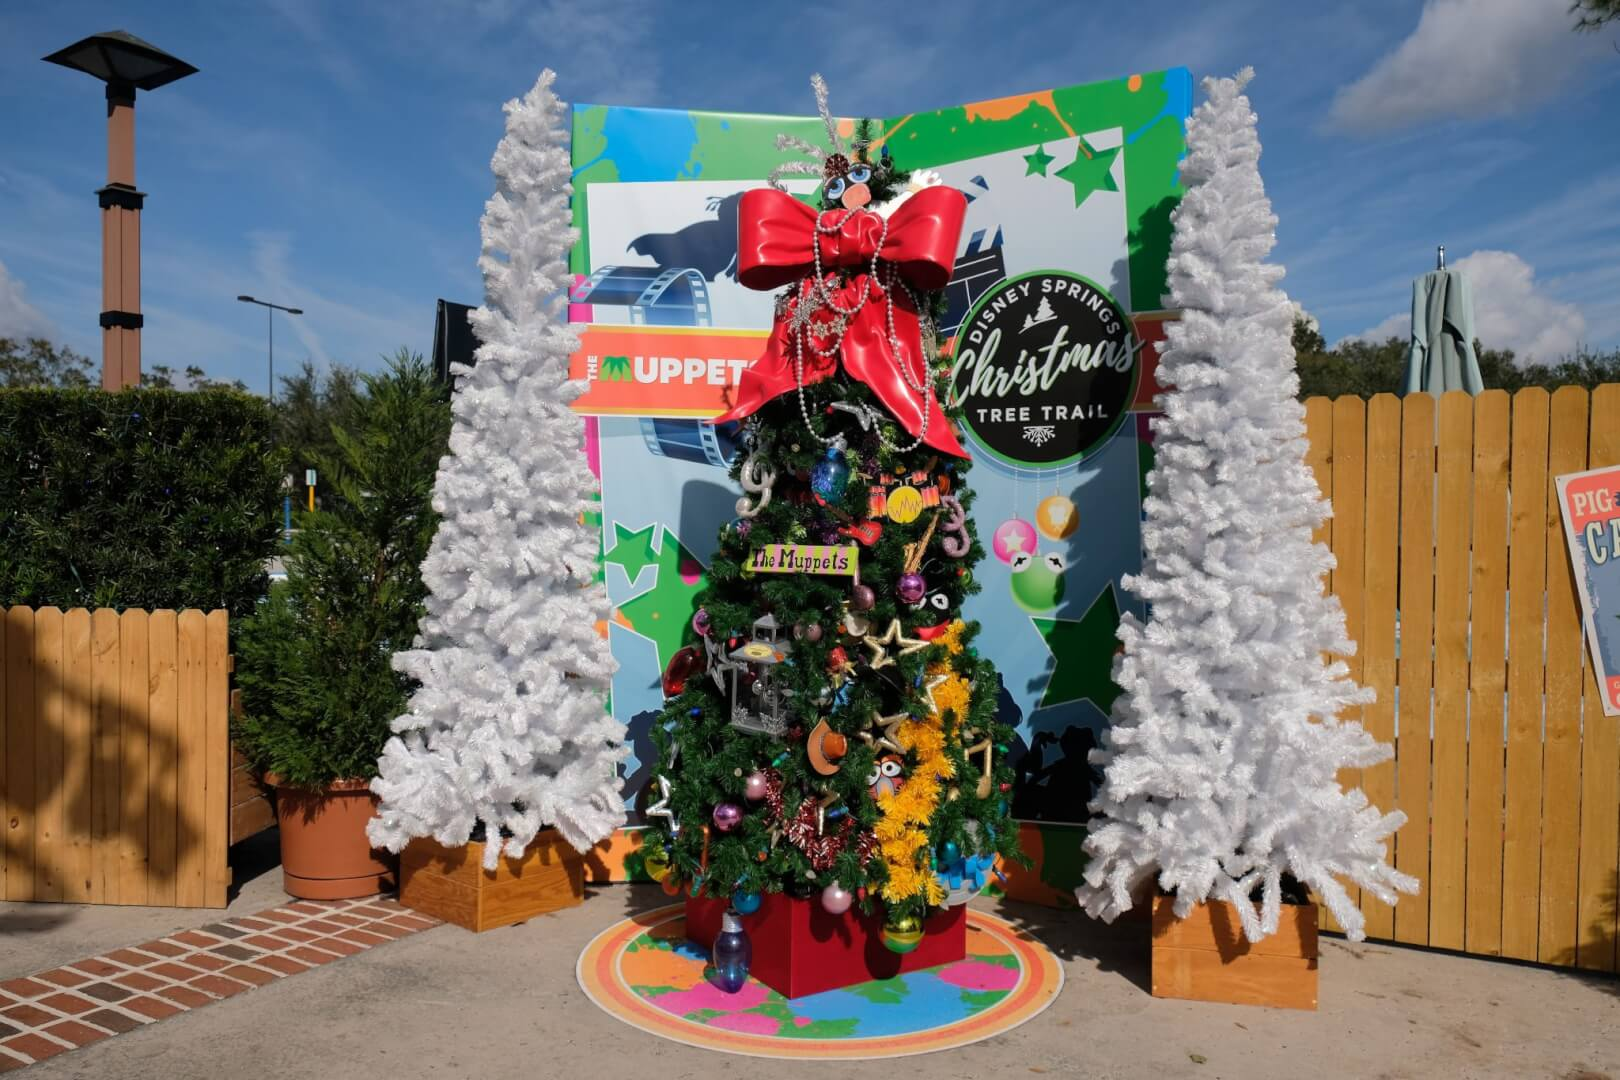 The Top 10 Best Decorated Trees At The Christmas Tree Trail In